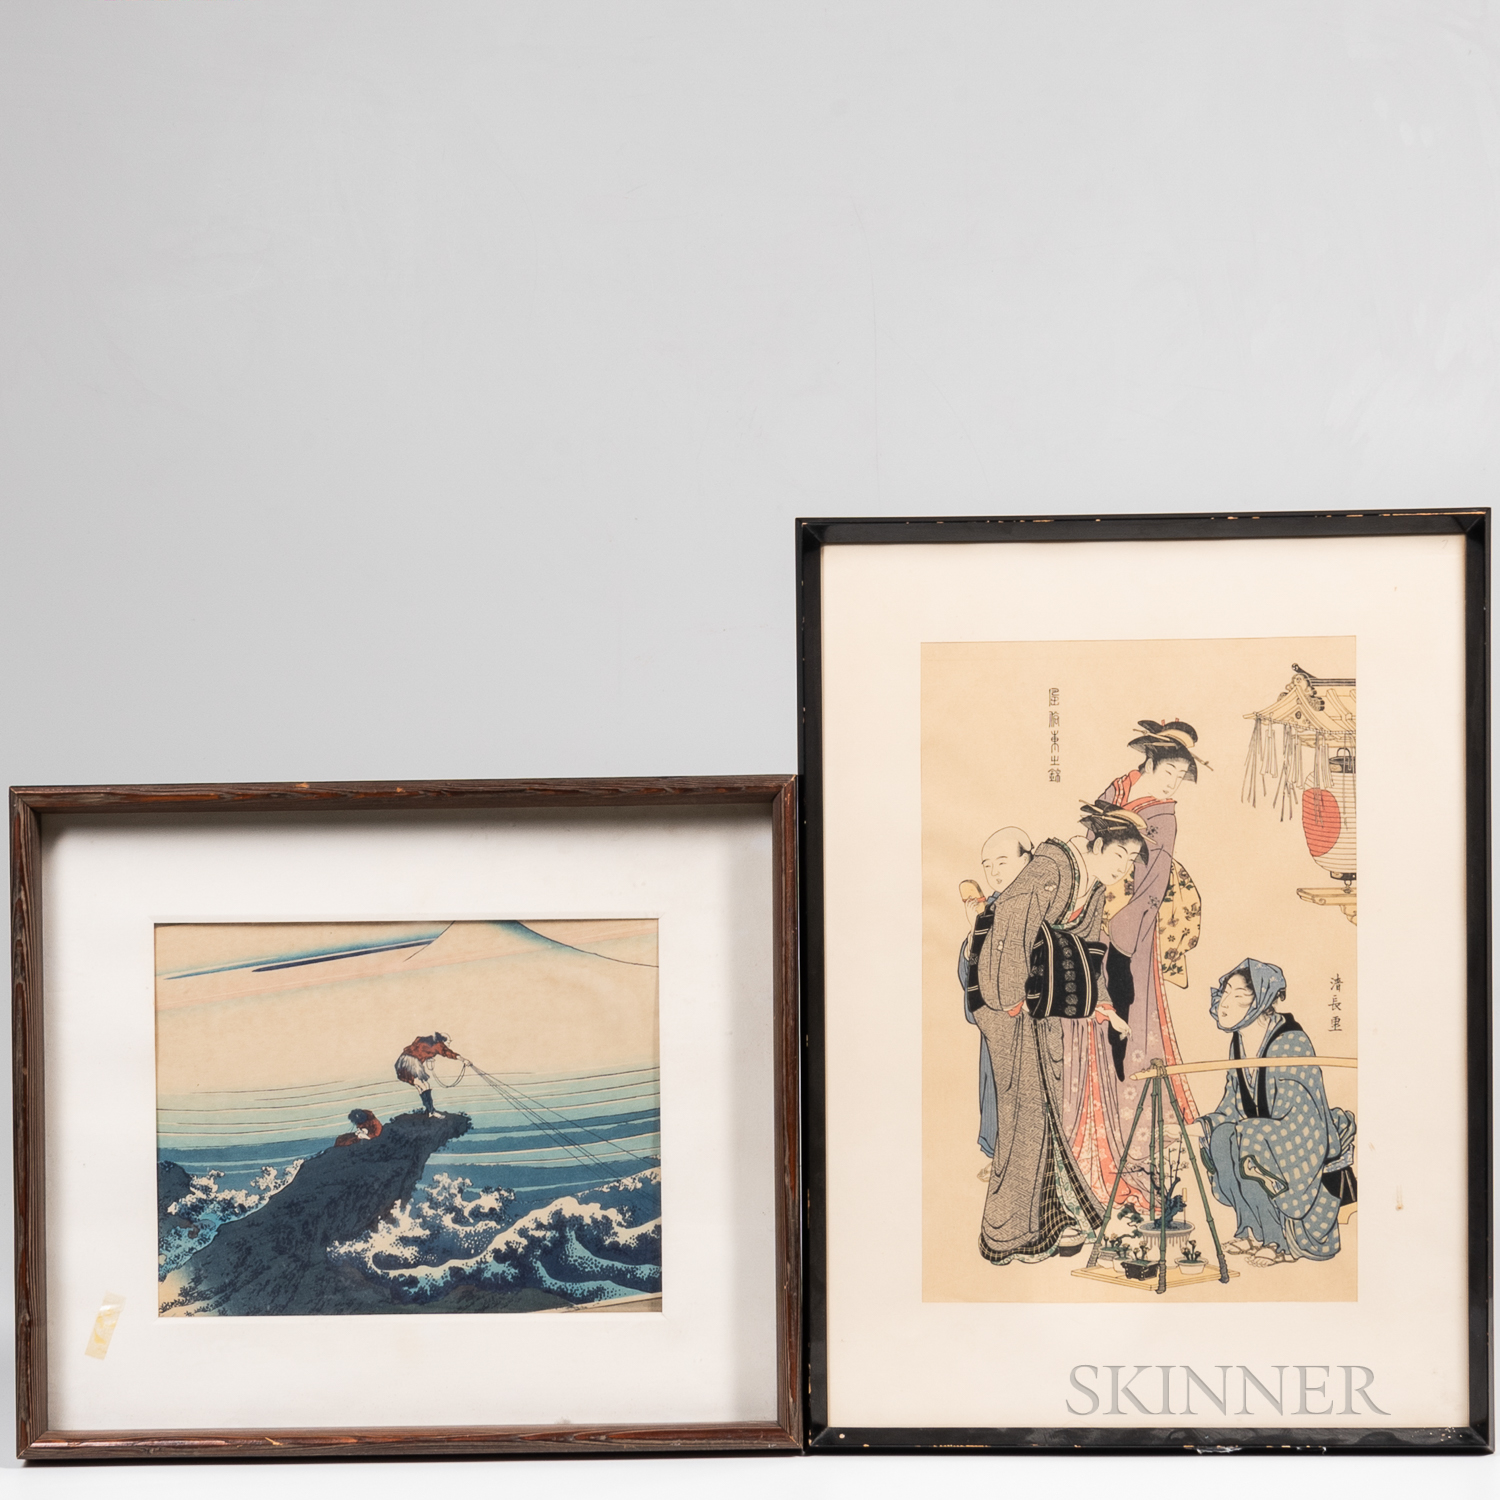 Two Ukiyo-e Woodblock Prints